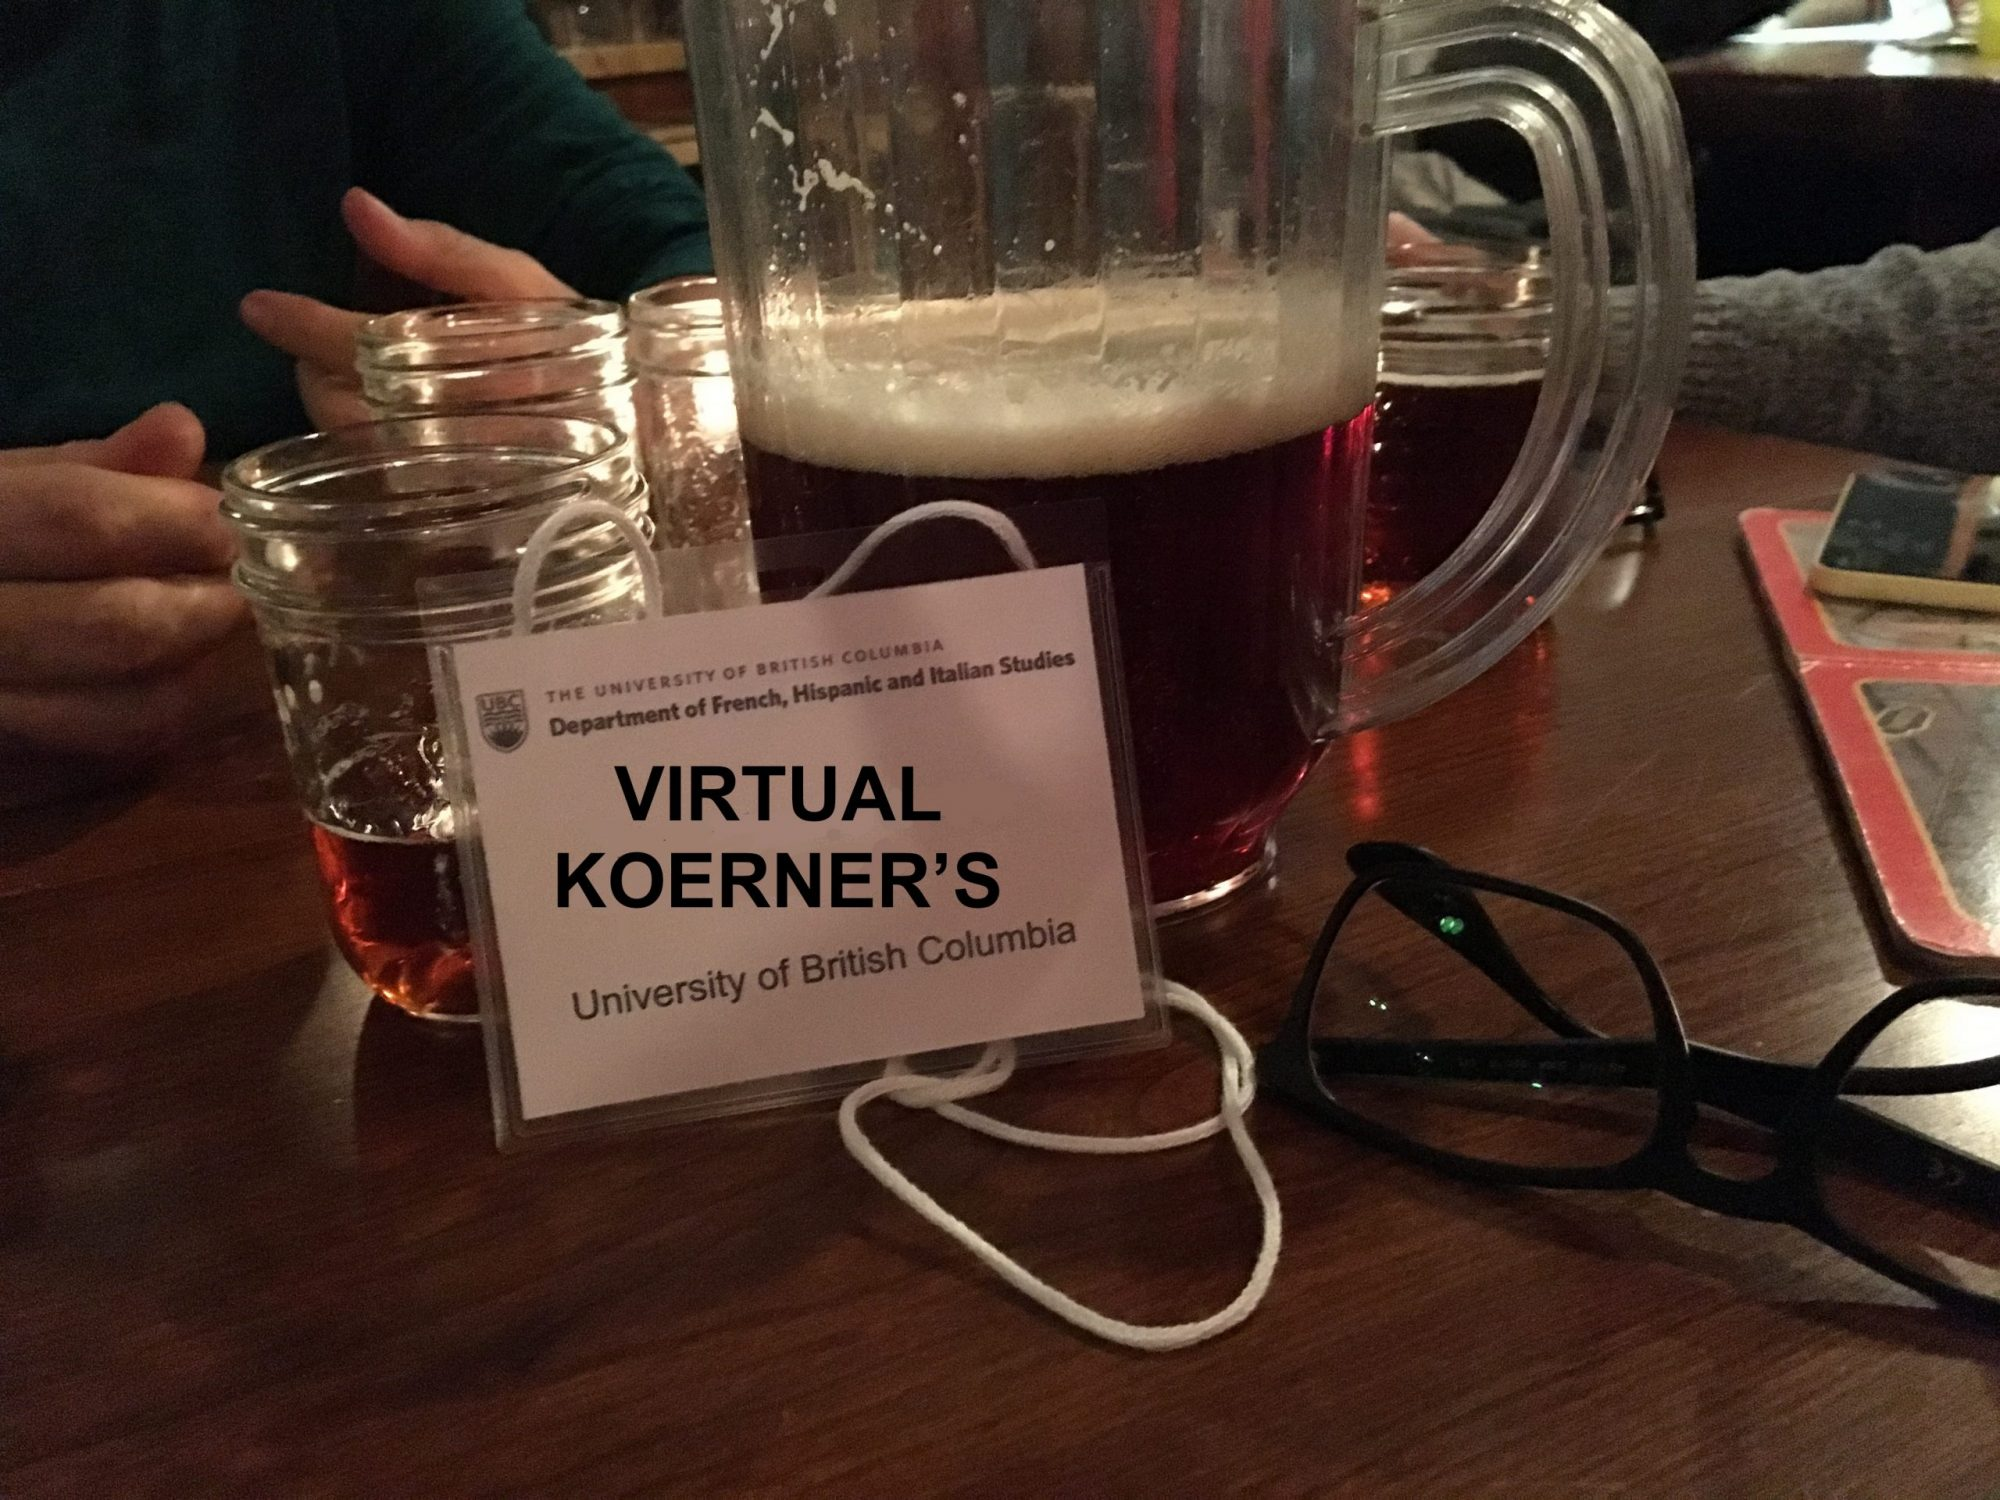 Virtual Koerners, or persistence in times of pandemic